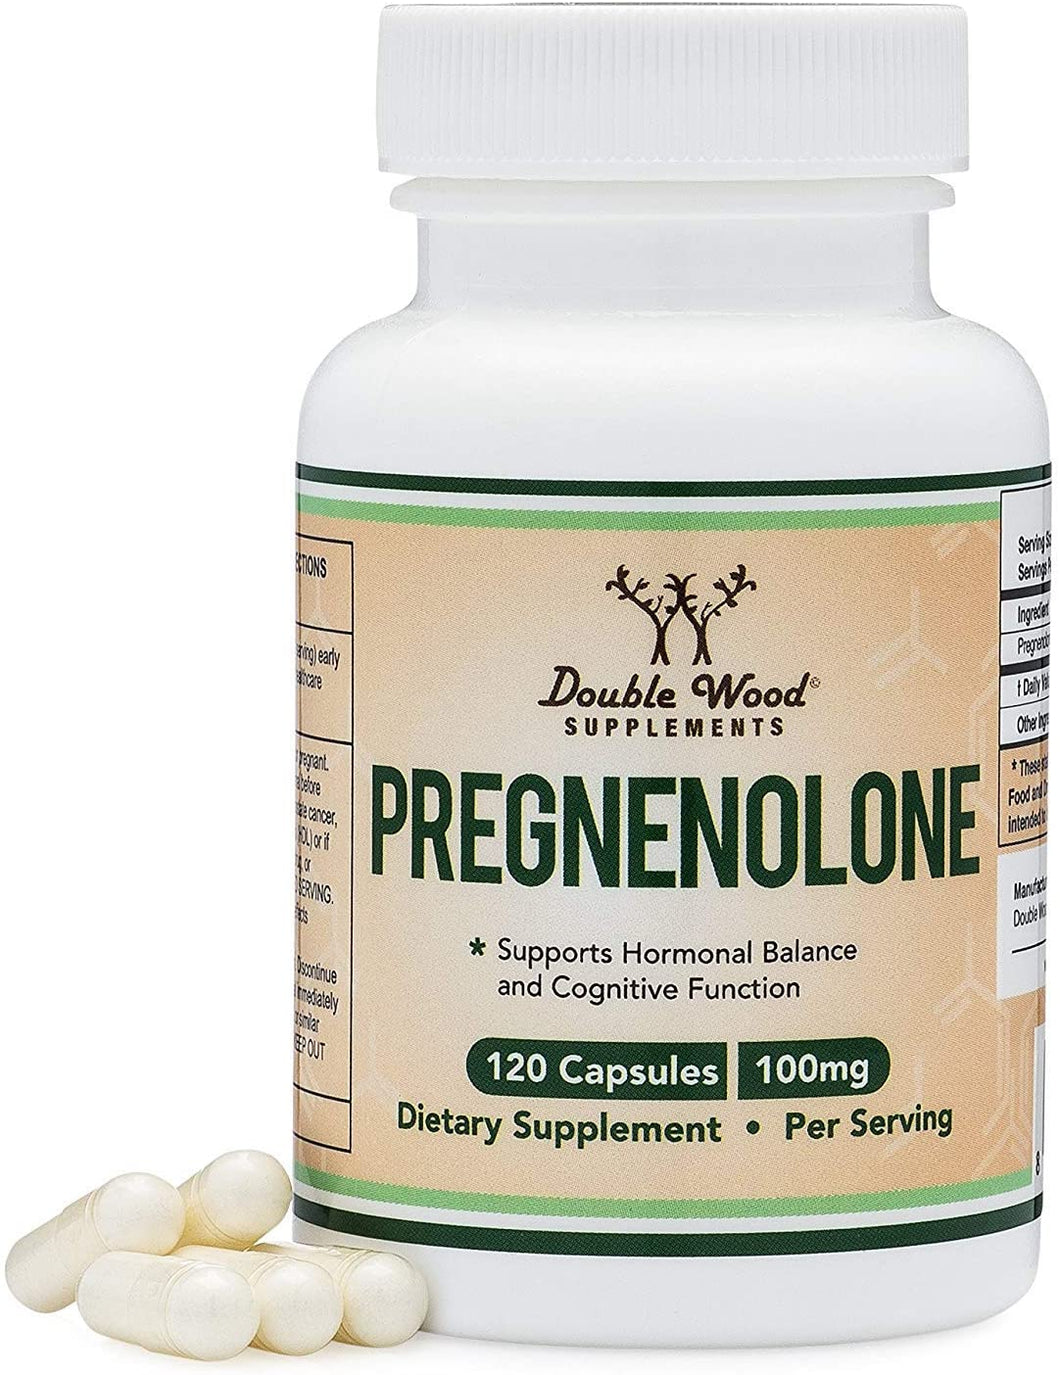 Pregnenolone - Third Party Tested - 120 Capsules - Made in The USA - 100mg Per Serving by Double Wood Supplements